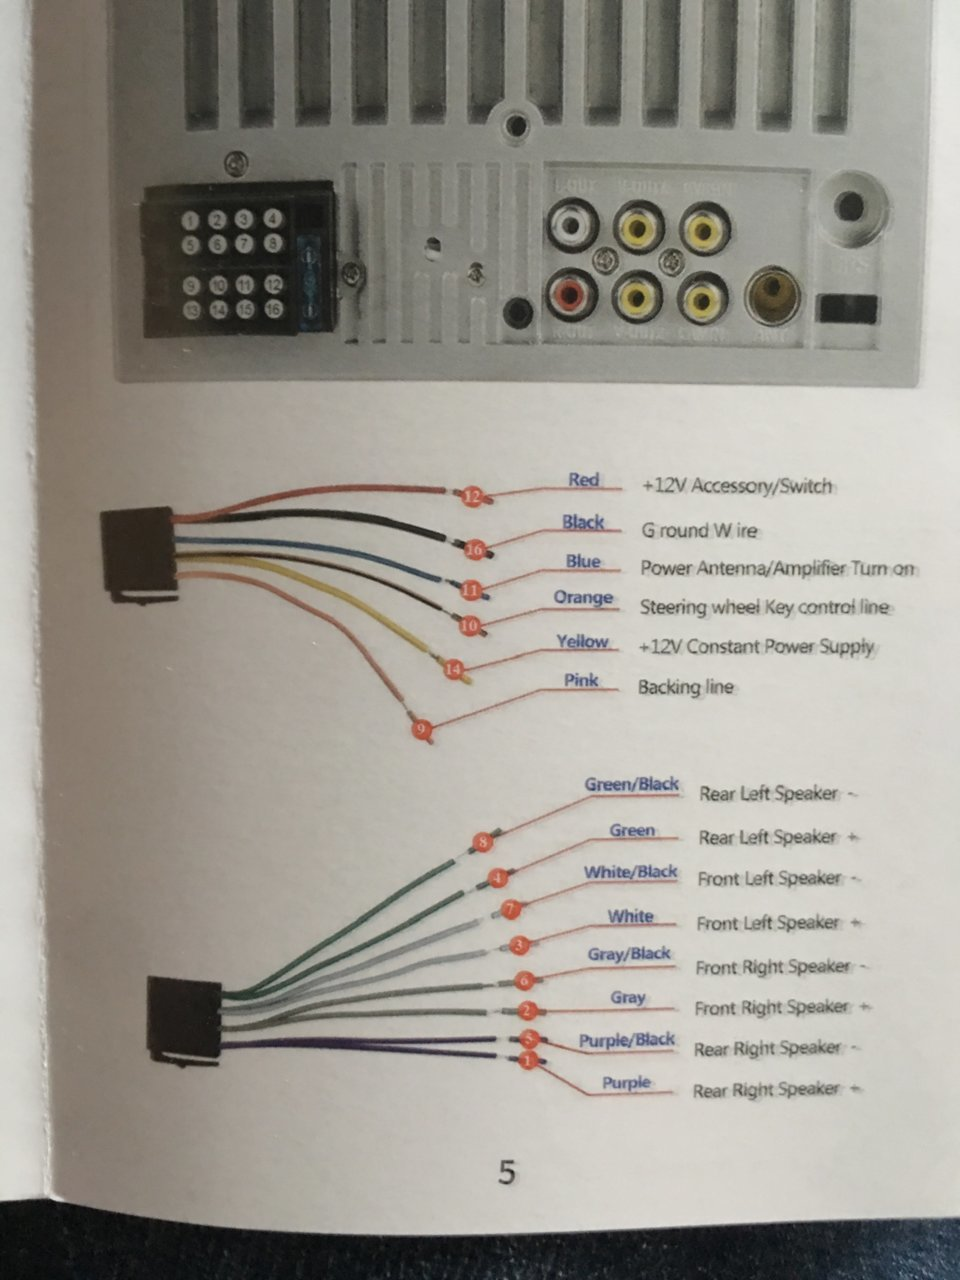 1998 Toyota Tacoma Wiring Diagram from twstatic.net